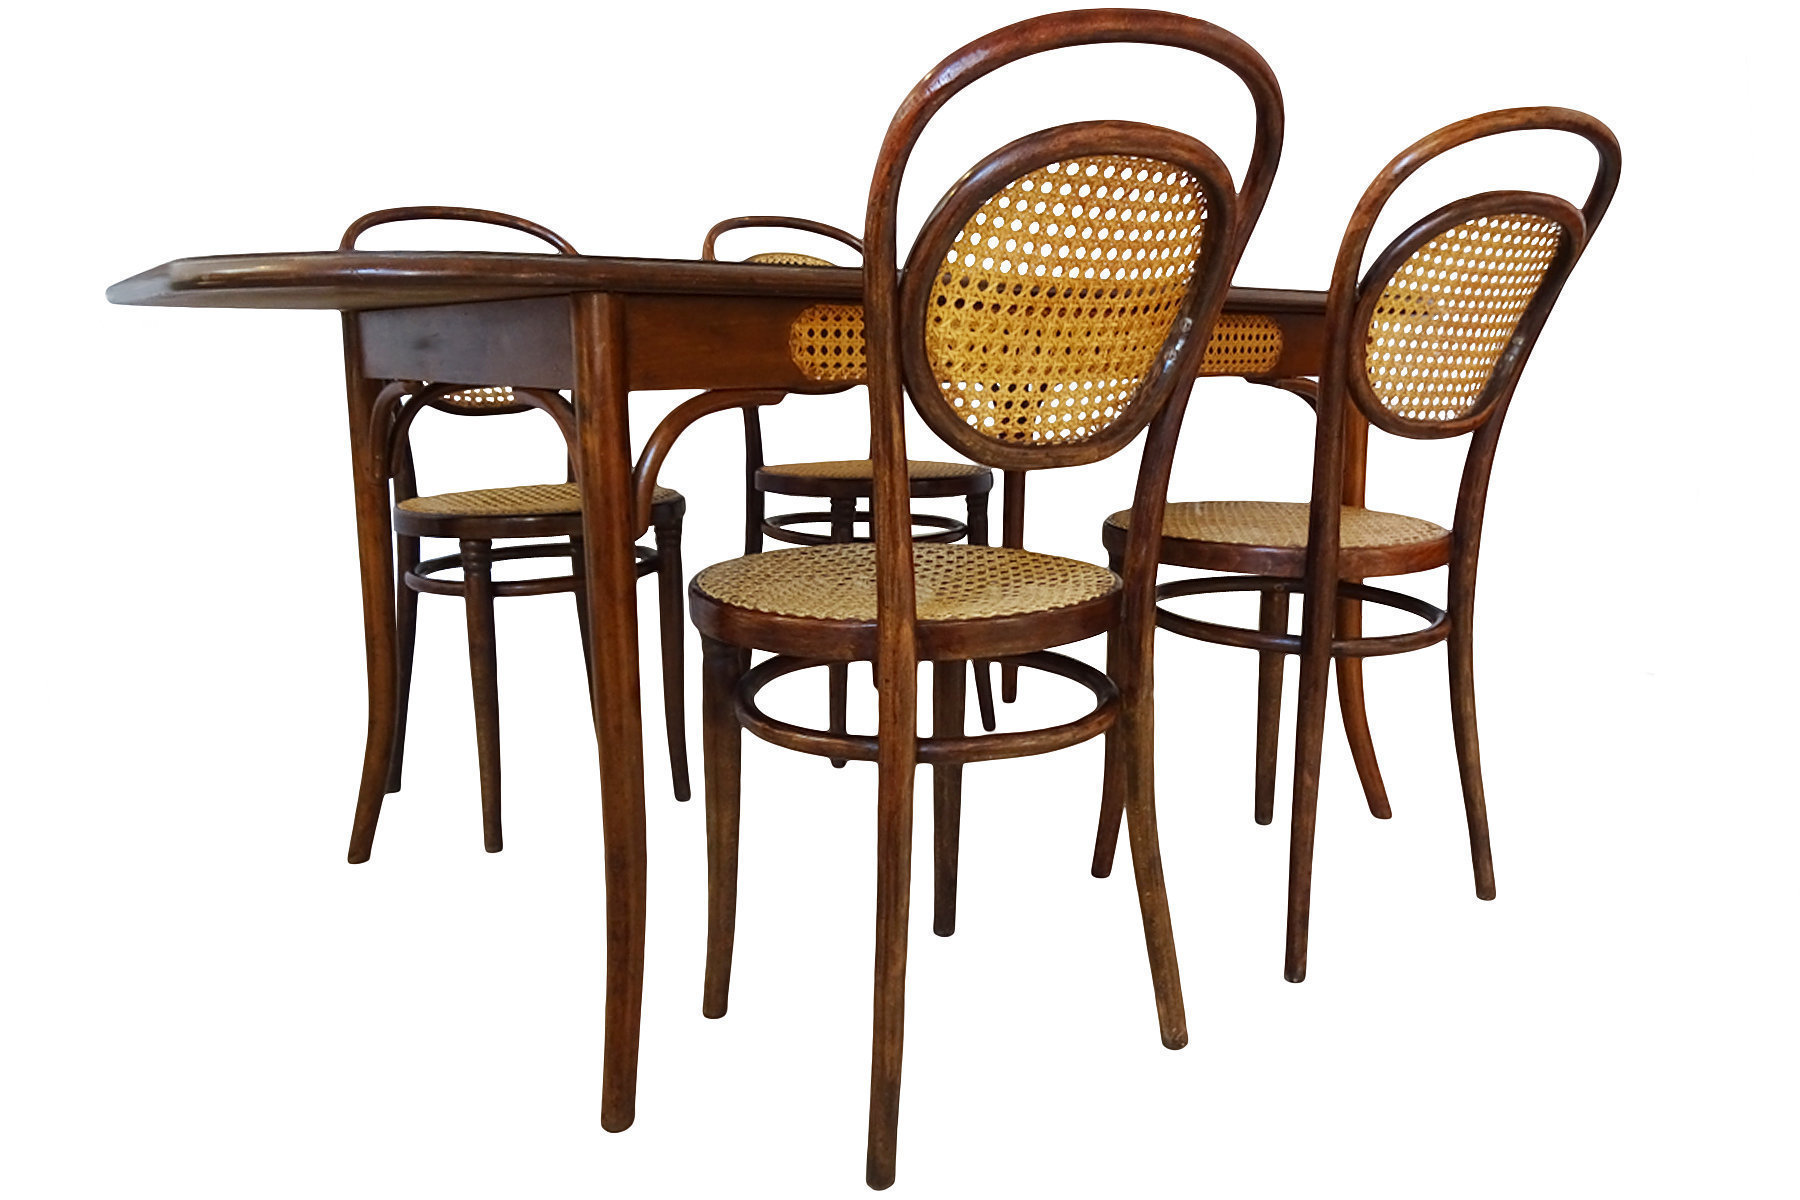 Thonet Michael Original Antique Michael Thonet Designed No 11 Chairs And Dining Table Set